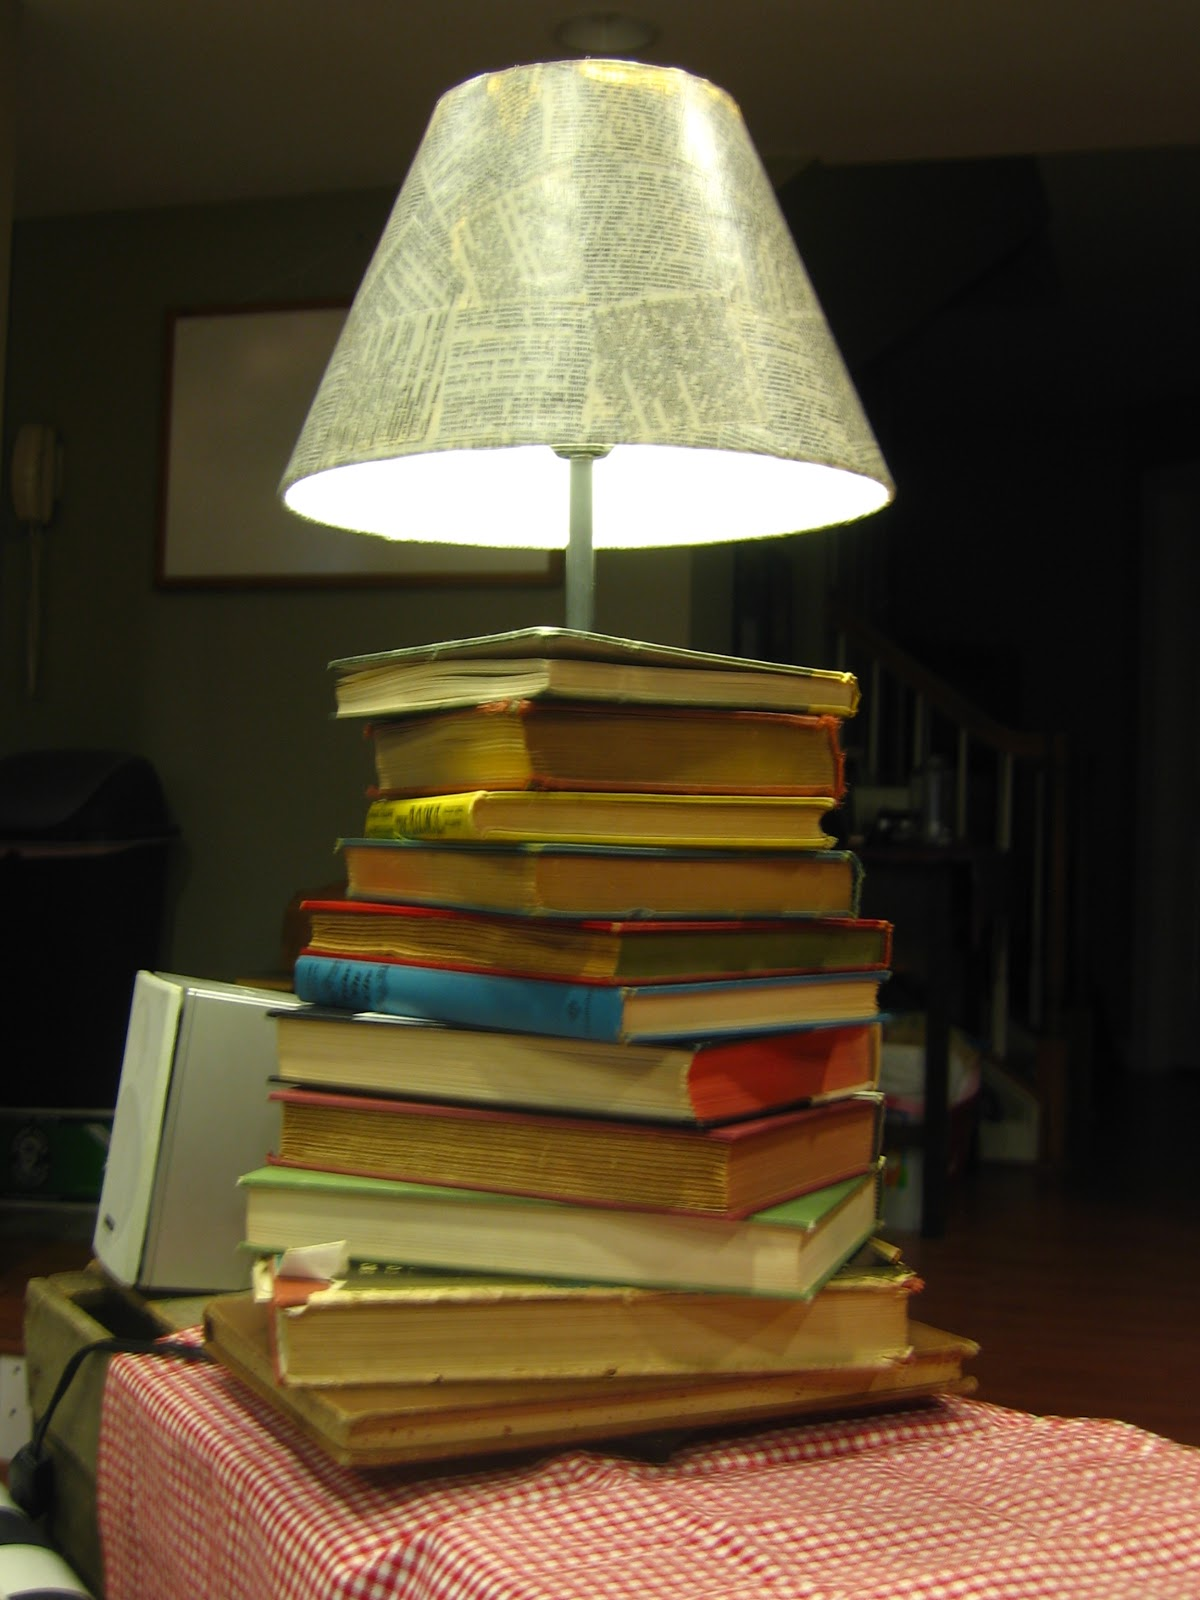 Mari Makes: Project - Book Lamp Deluxe!